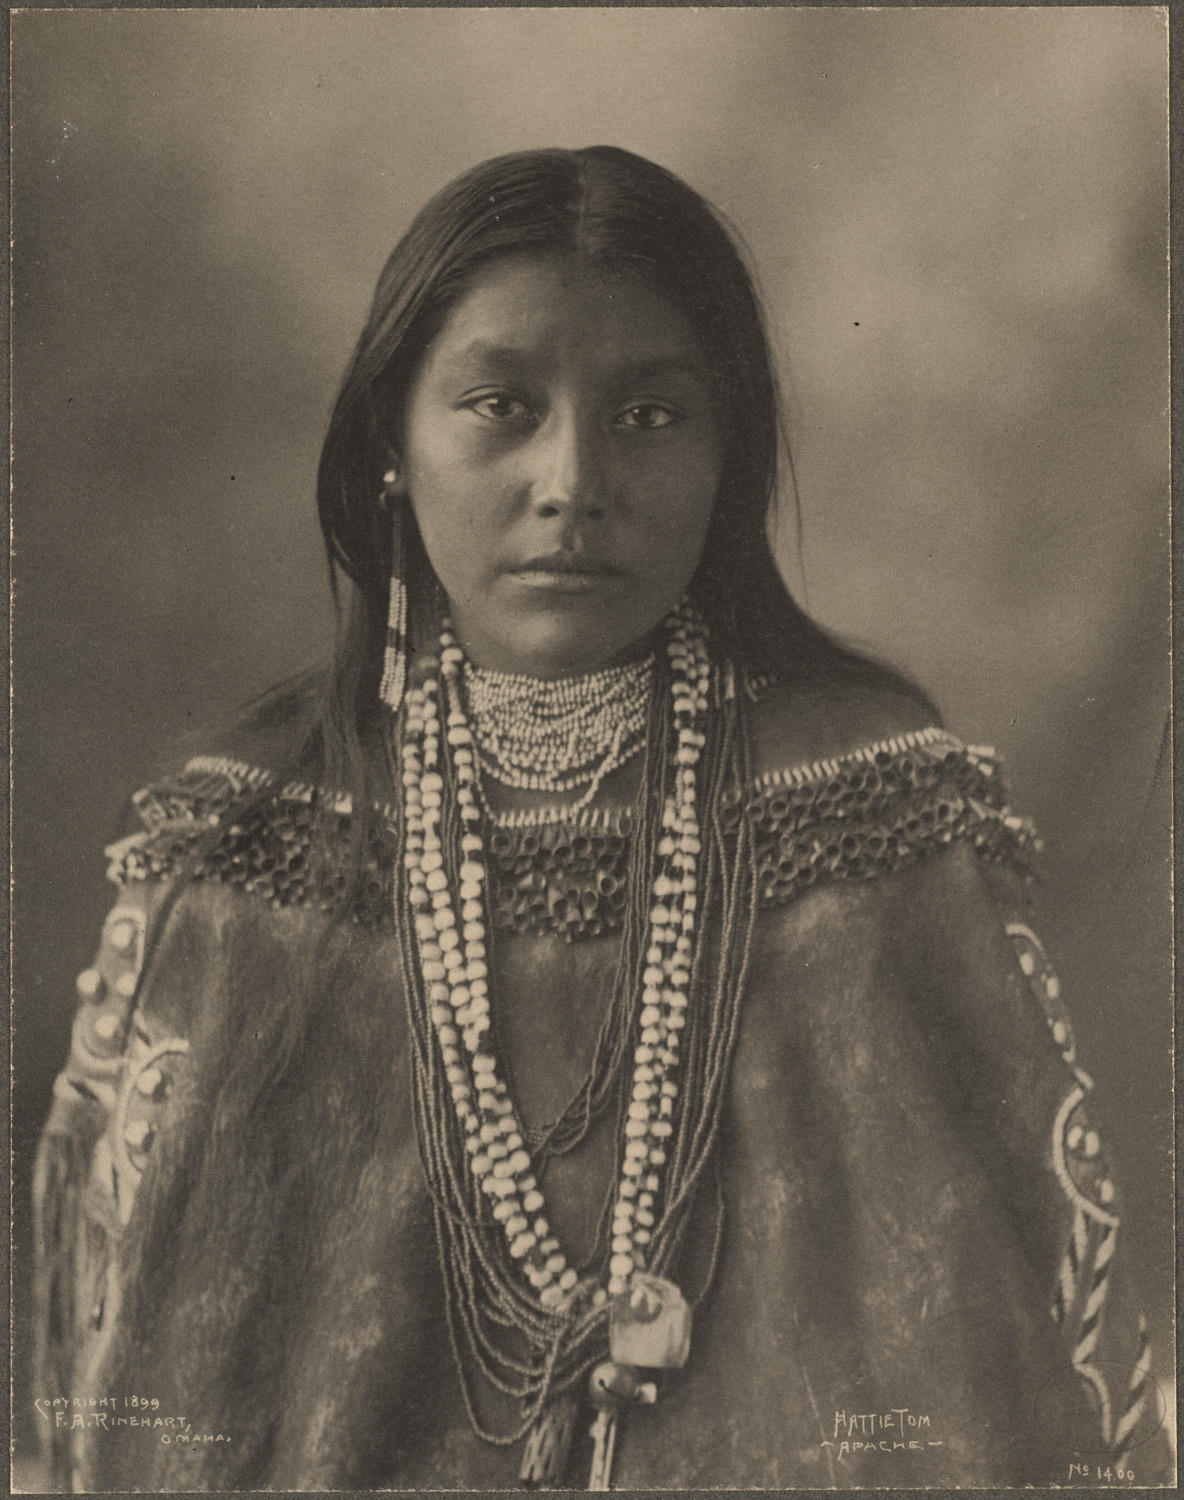 https://upload.wikimedia.org/wikipedia/commons/4/48/Chiricahua_Apache_Hattie_Tom.jpg